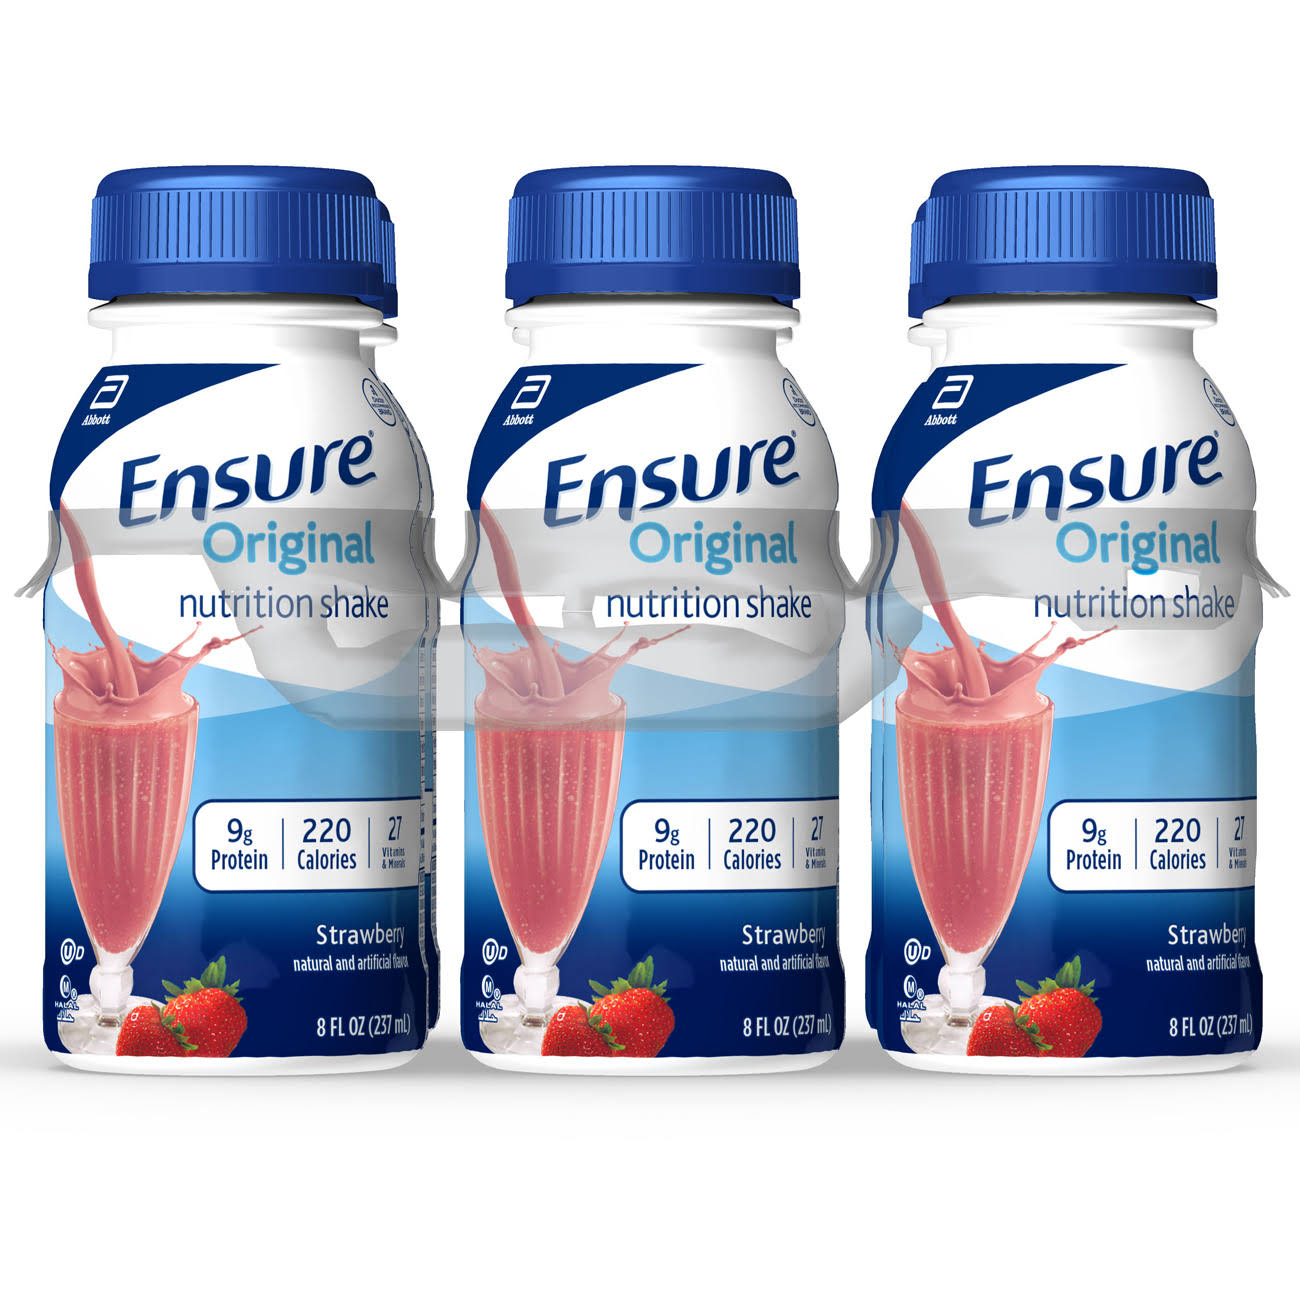 Abbott Ensure Original Nutrition Shake - Strawberry, 8oz